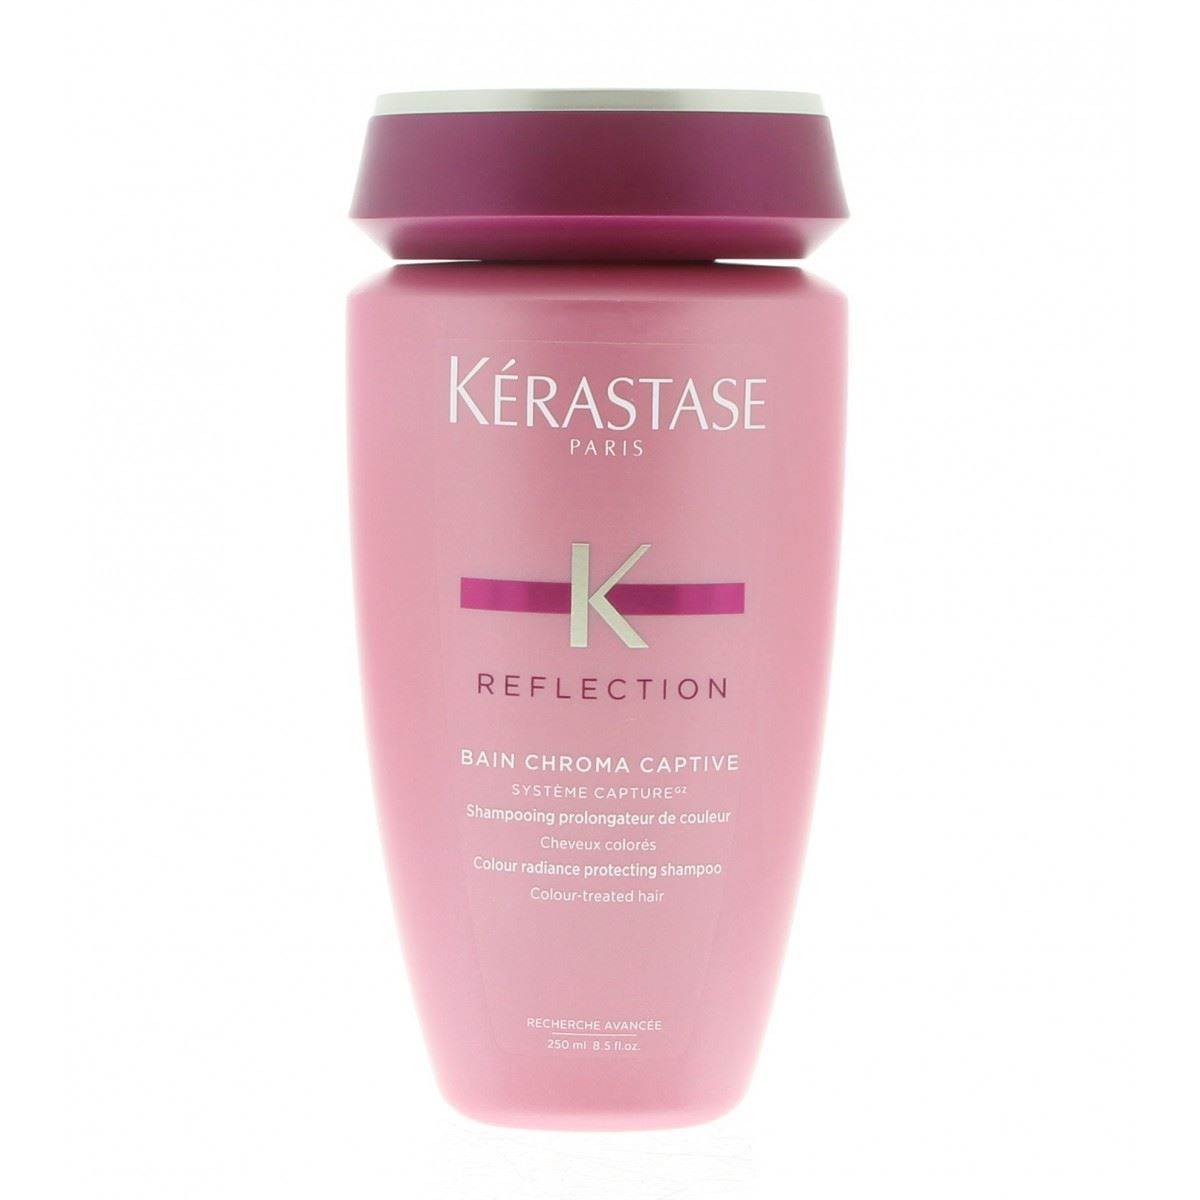 Kerastase reflection bain chroma captive shampoo 250 ml for Kerastase reflection bain miroir 1 shine revealing shampoo